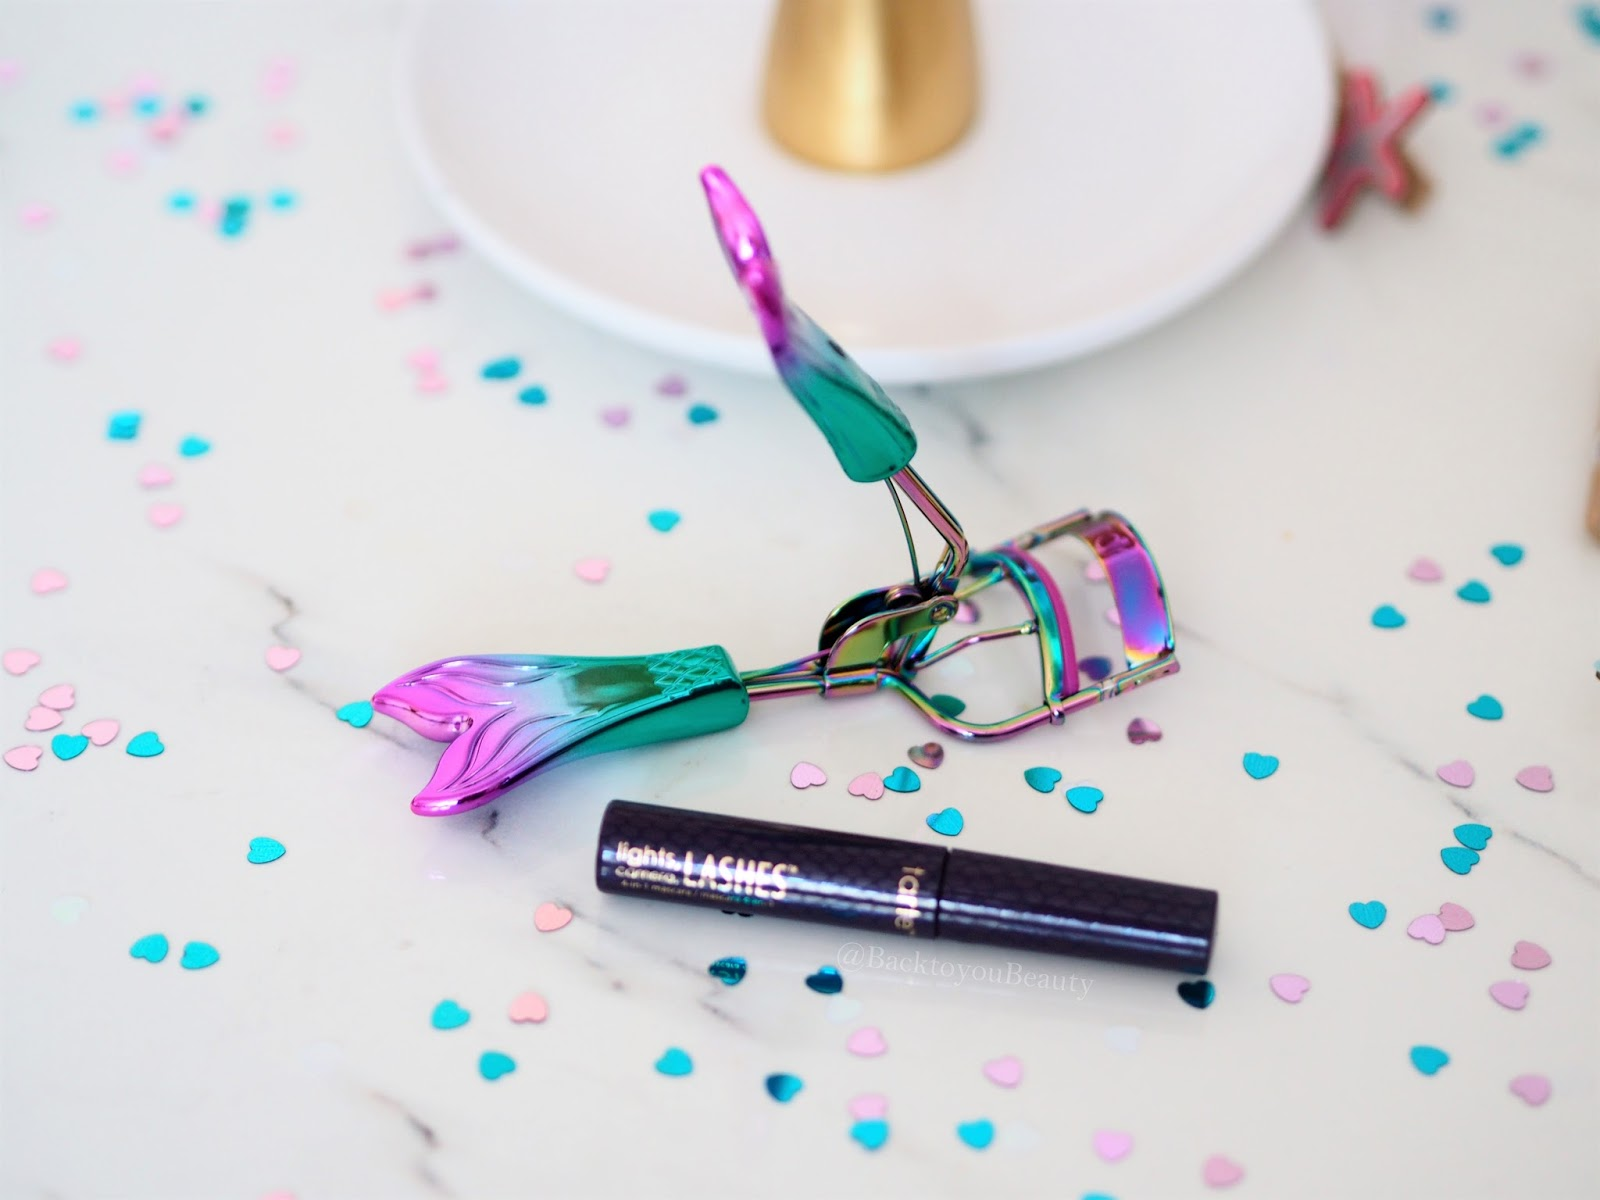 Tarte Mermaid lash curlers and mascara